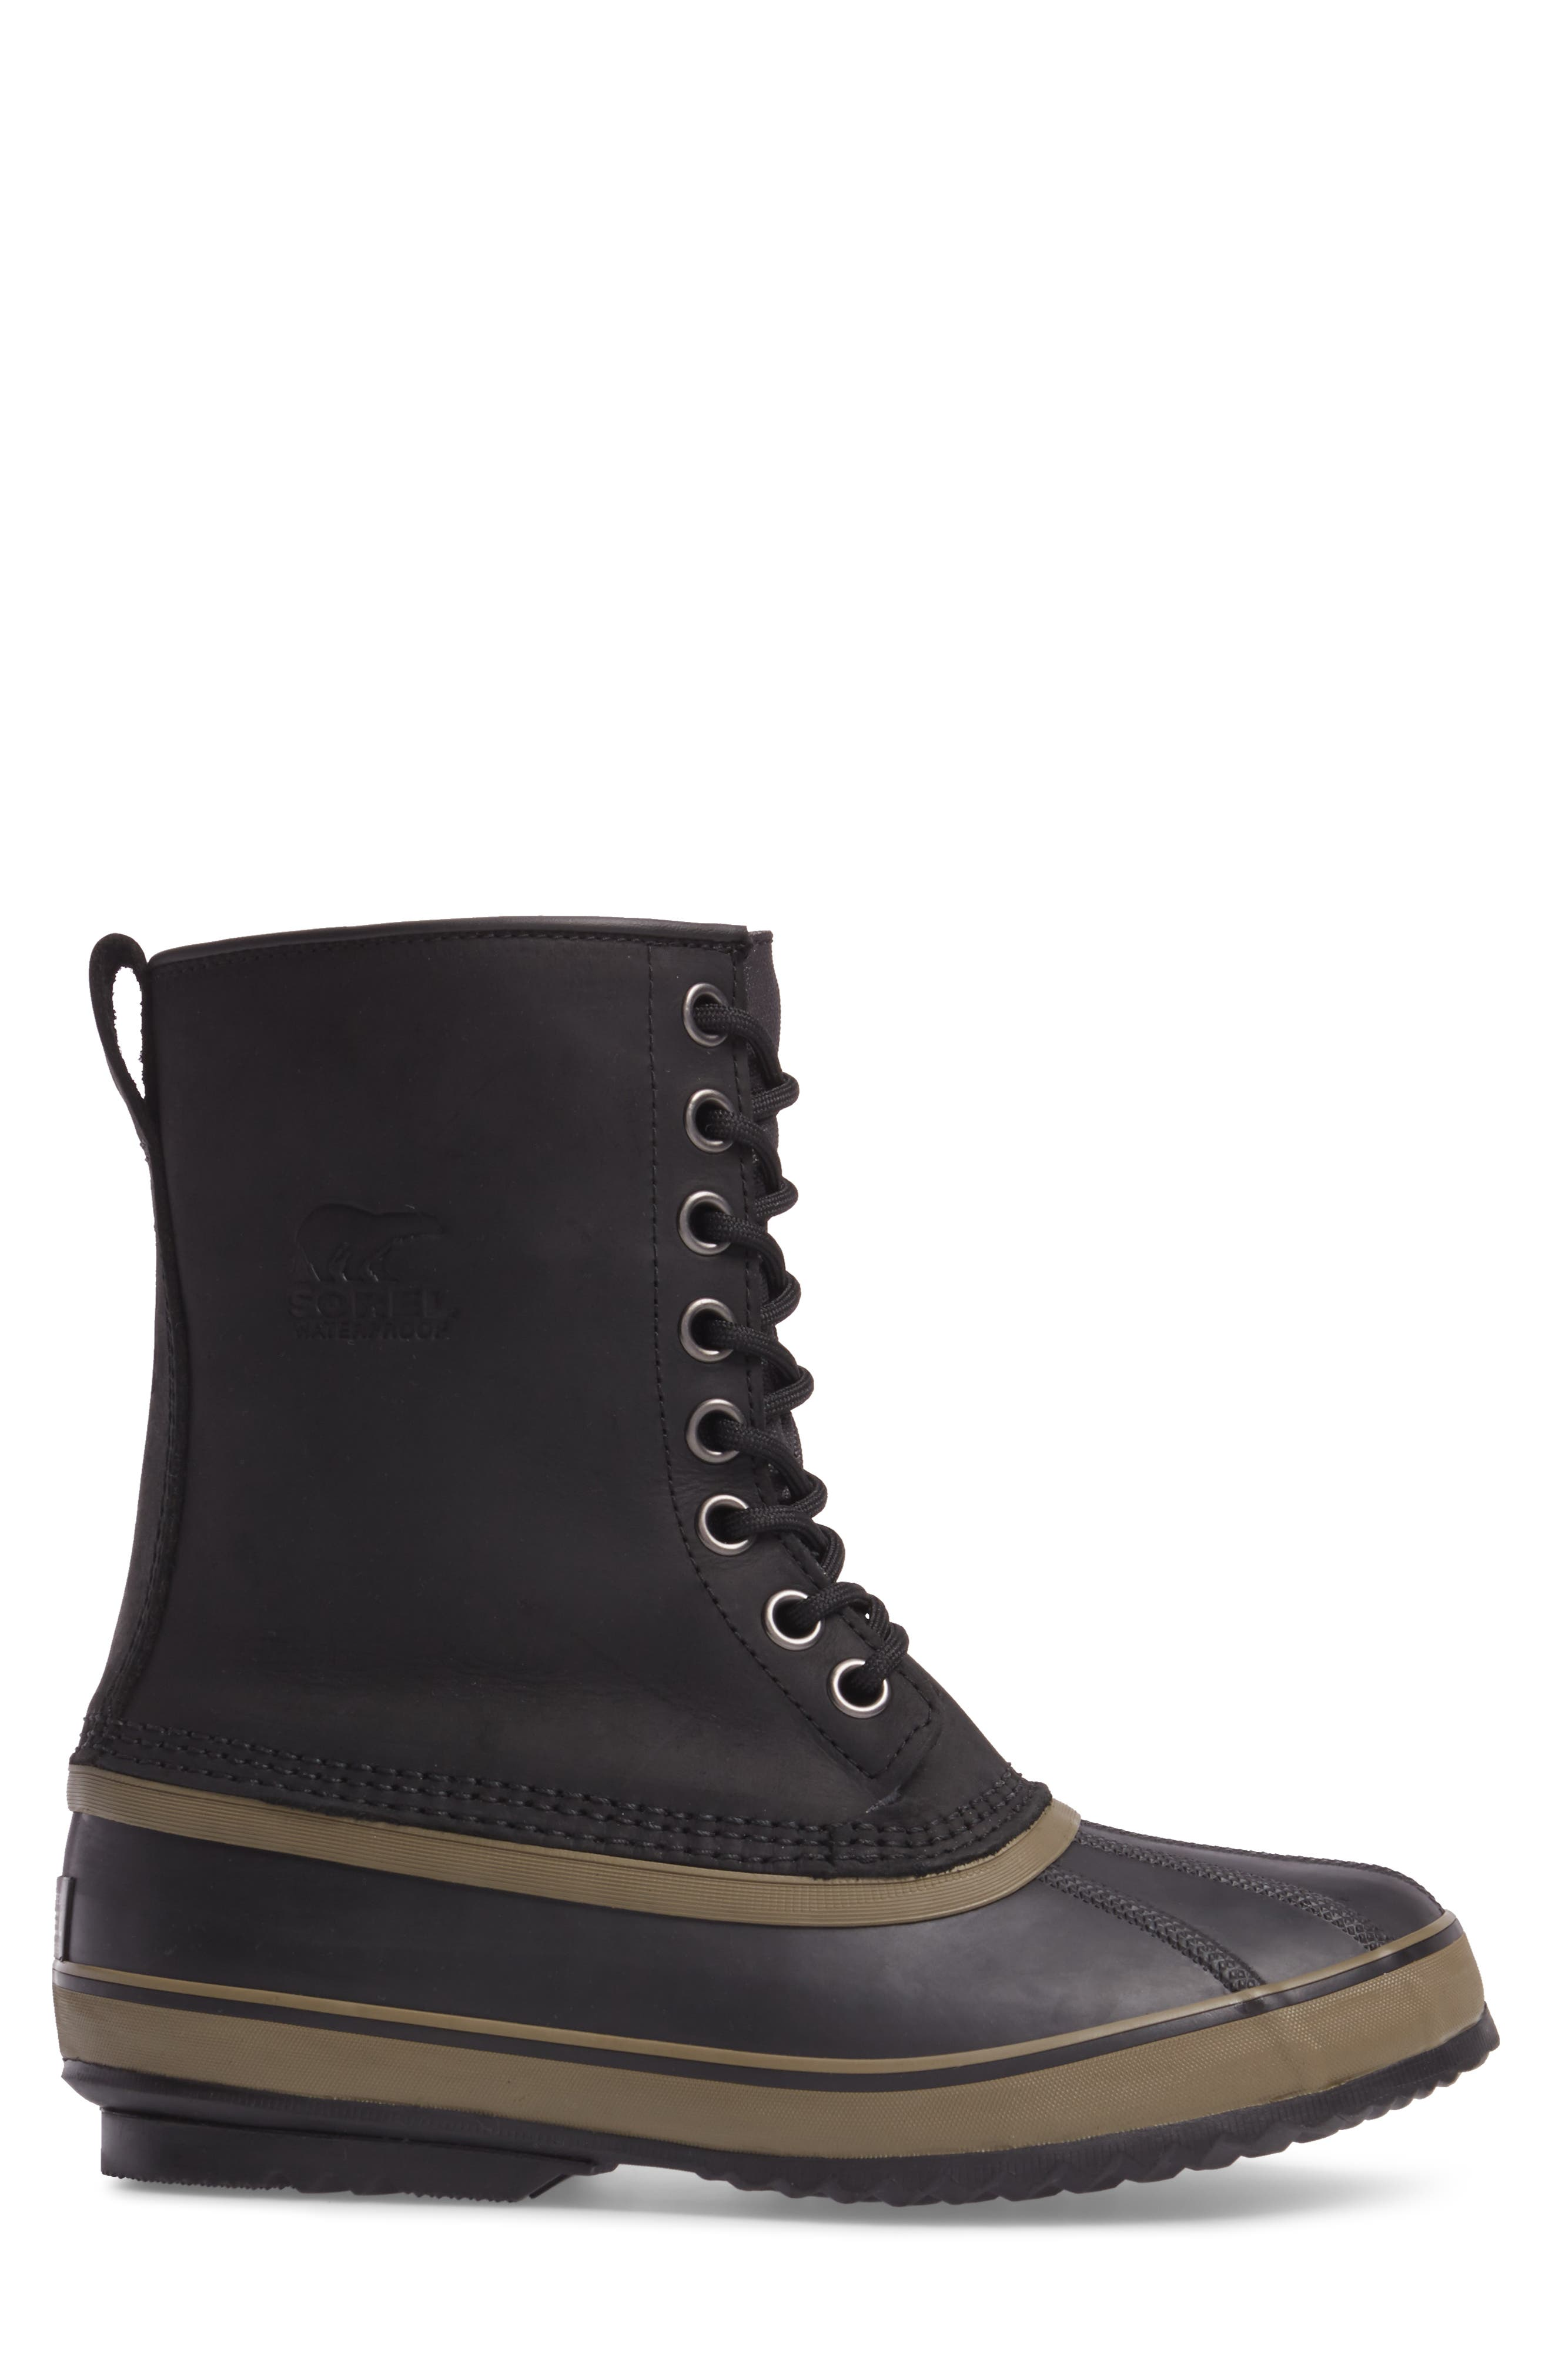 Alternate Image 3  - SOREL '1964 Premium T' Snow Boot